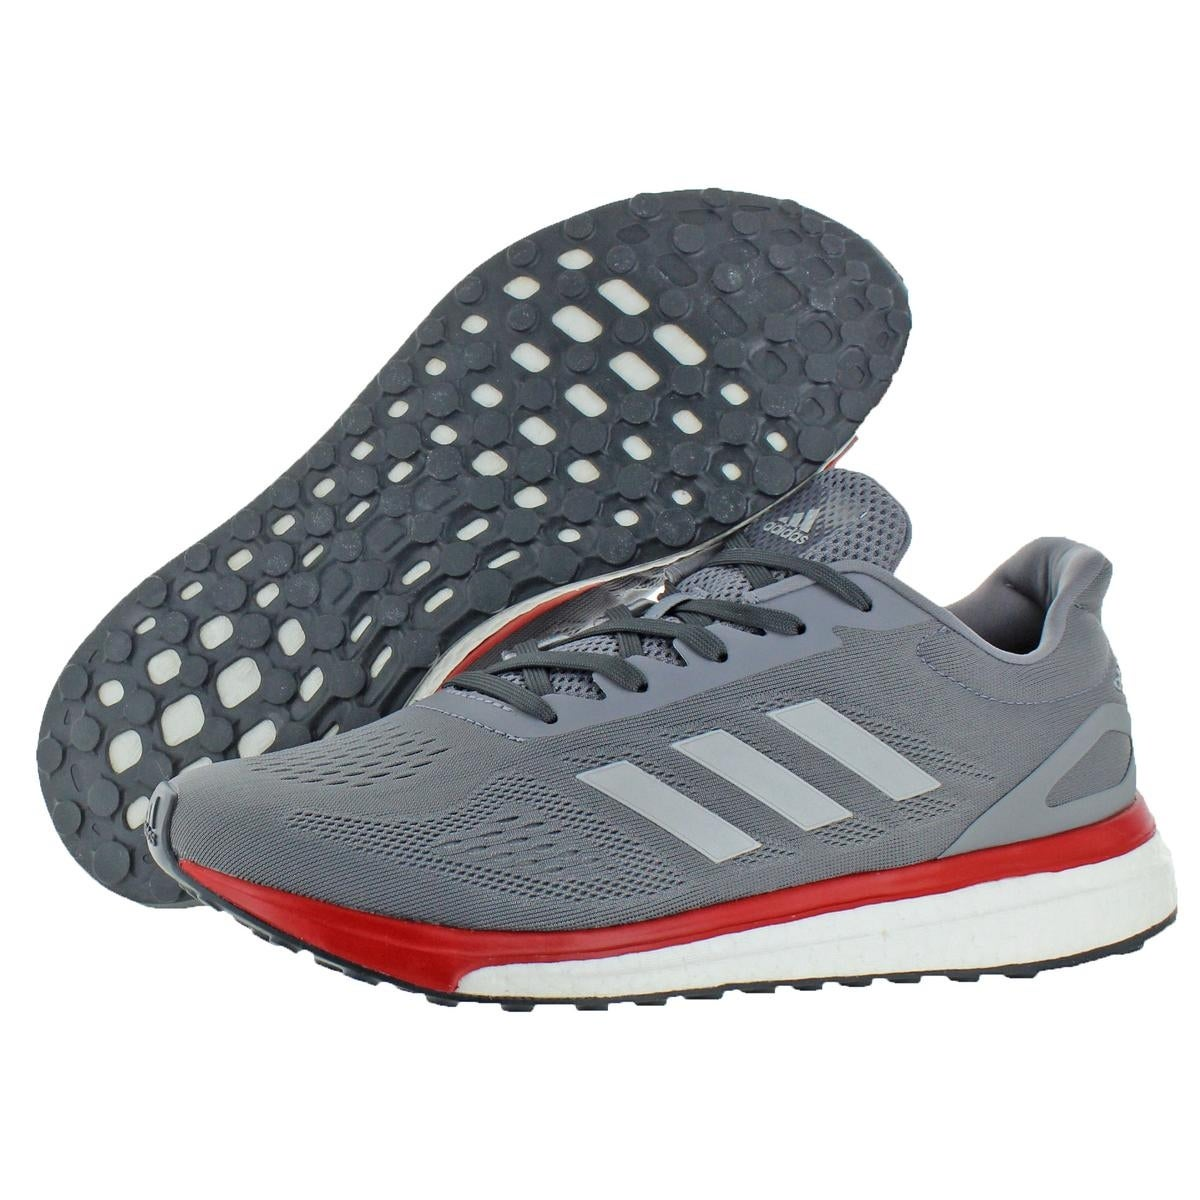 06e3184d8837b Shop Adidas Mens Response LT Running Shoes Trainers Low-Top - 8.5 Medium  (D) - Free Shipping Today - Overstock - 25584013